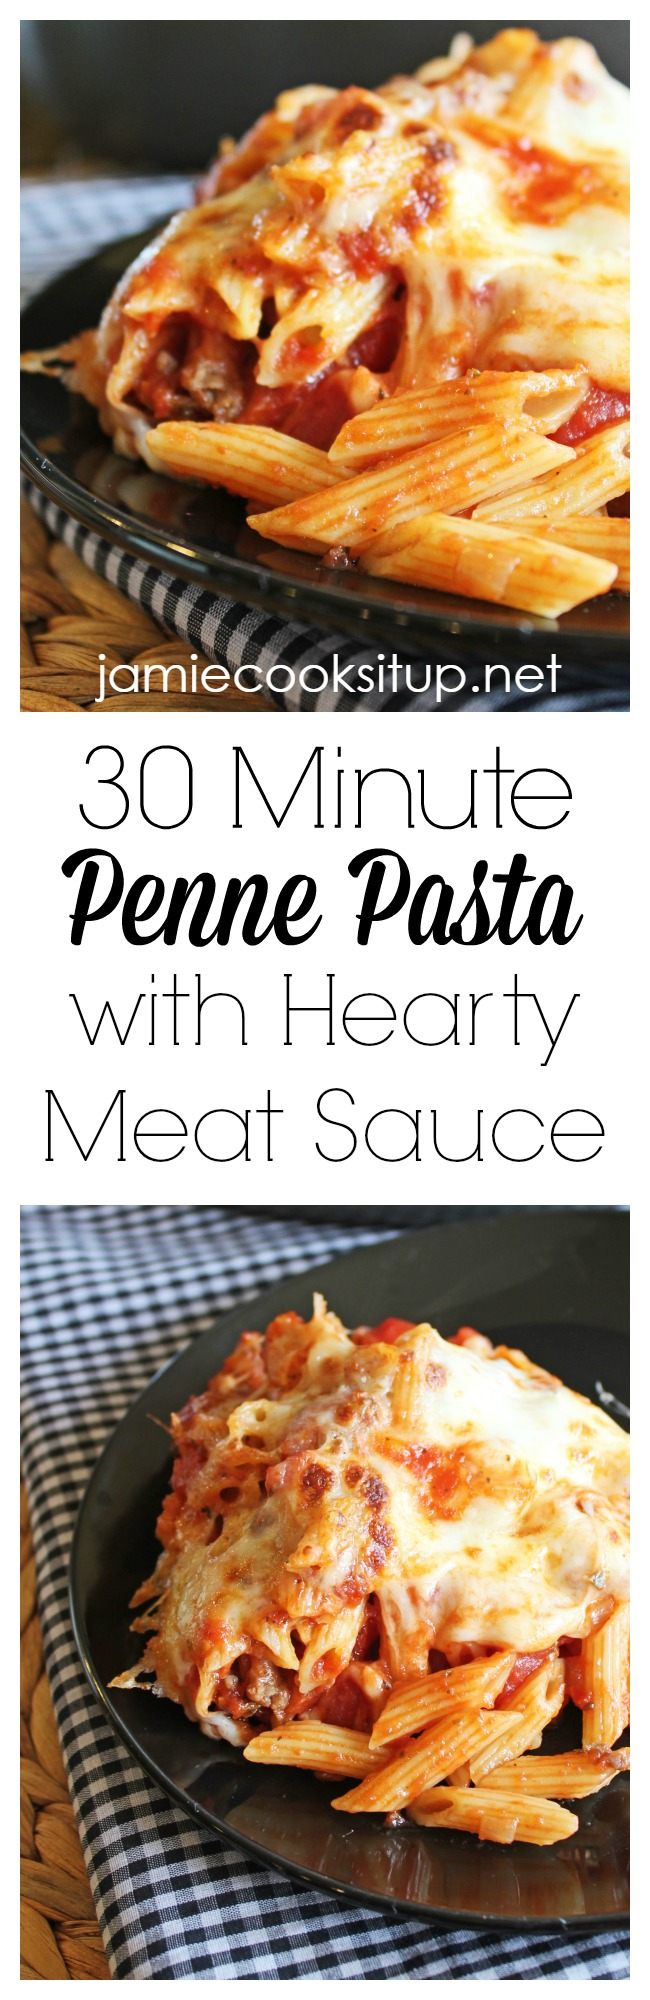 30 Minute Penne Pasta with Hearty Meat Sauce from Jamie Cooks It Up!